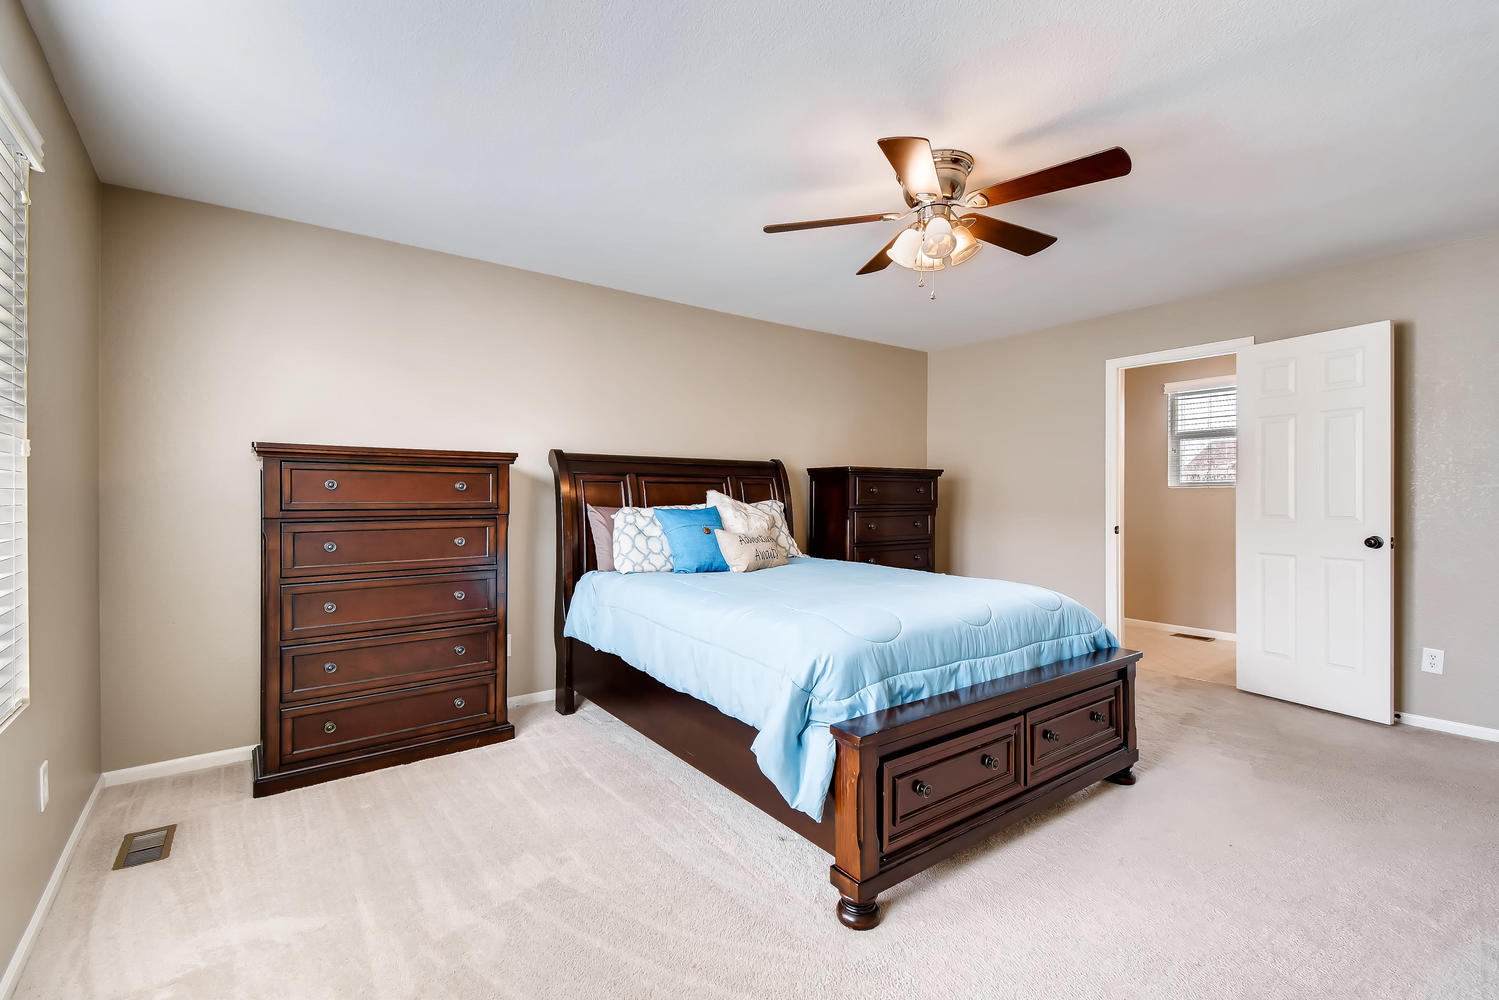 REAL ESTATE LISTING: 10595 Forester Pl Longmont CO Master Bedroom